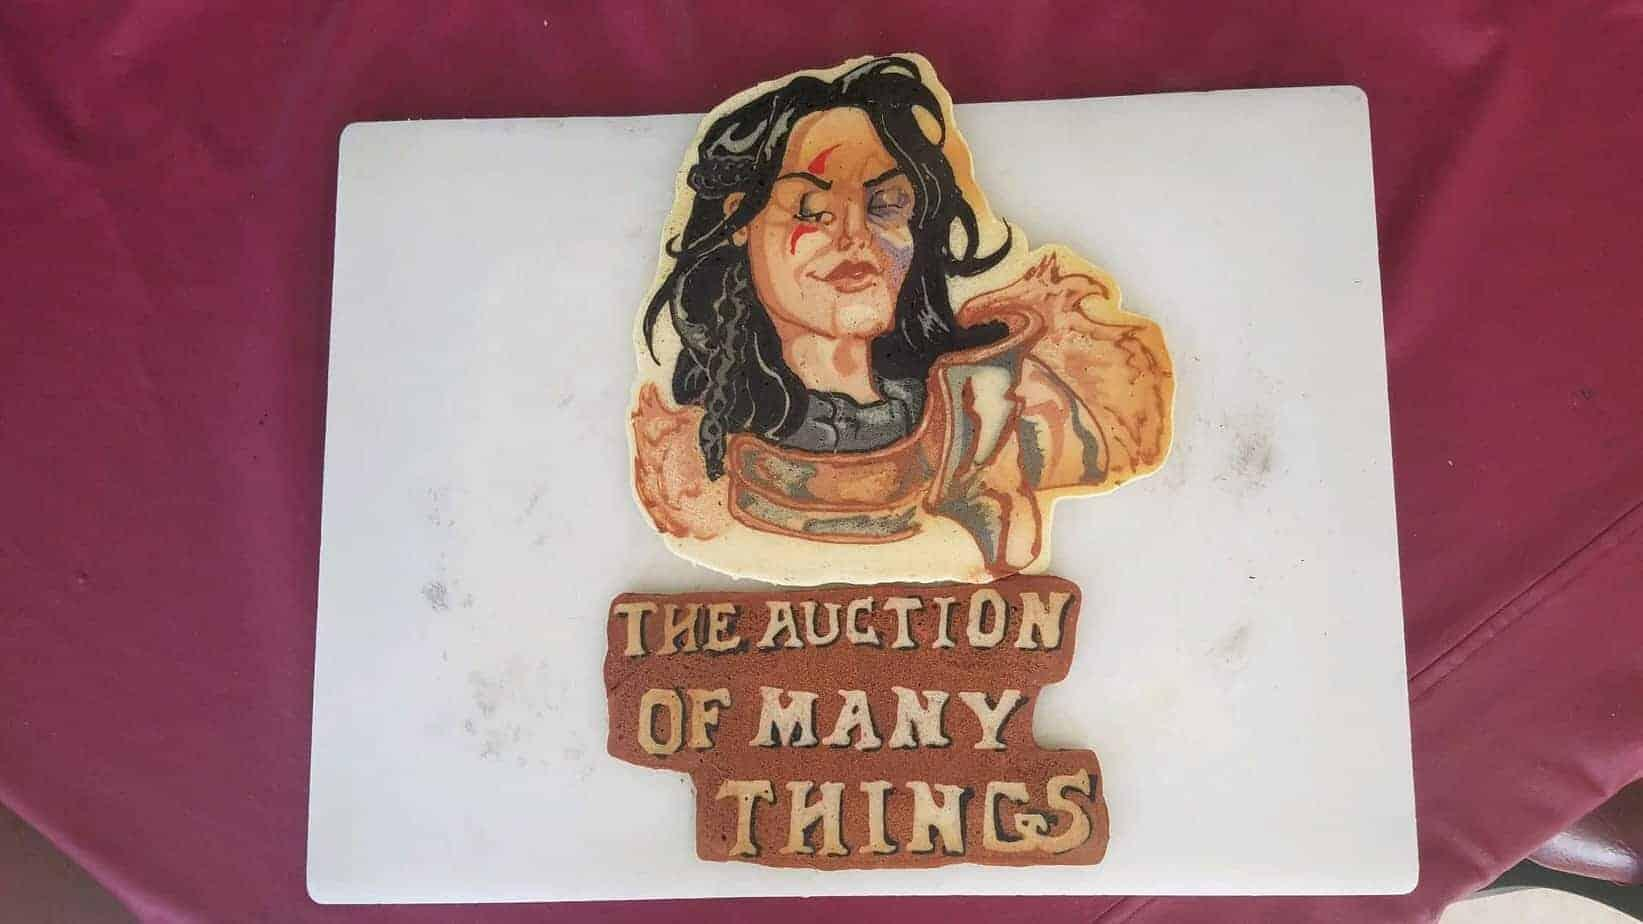 The Auction of Many Things